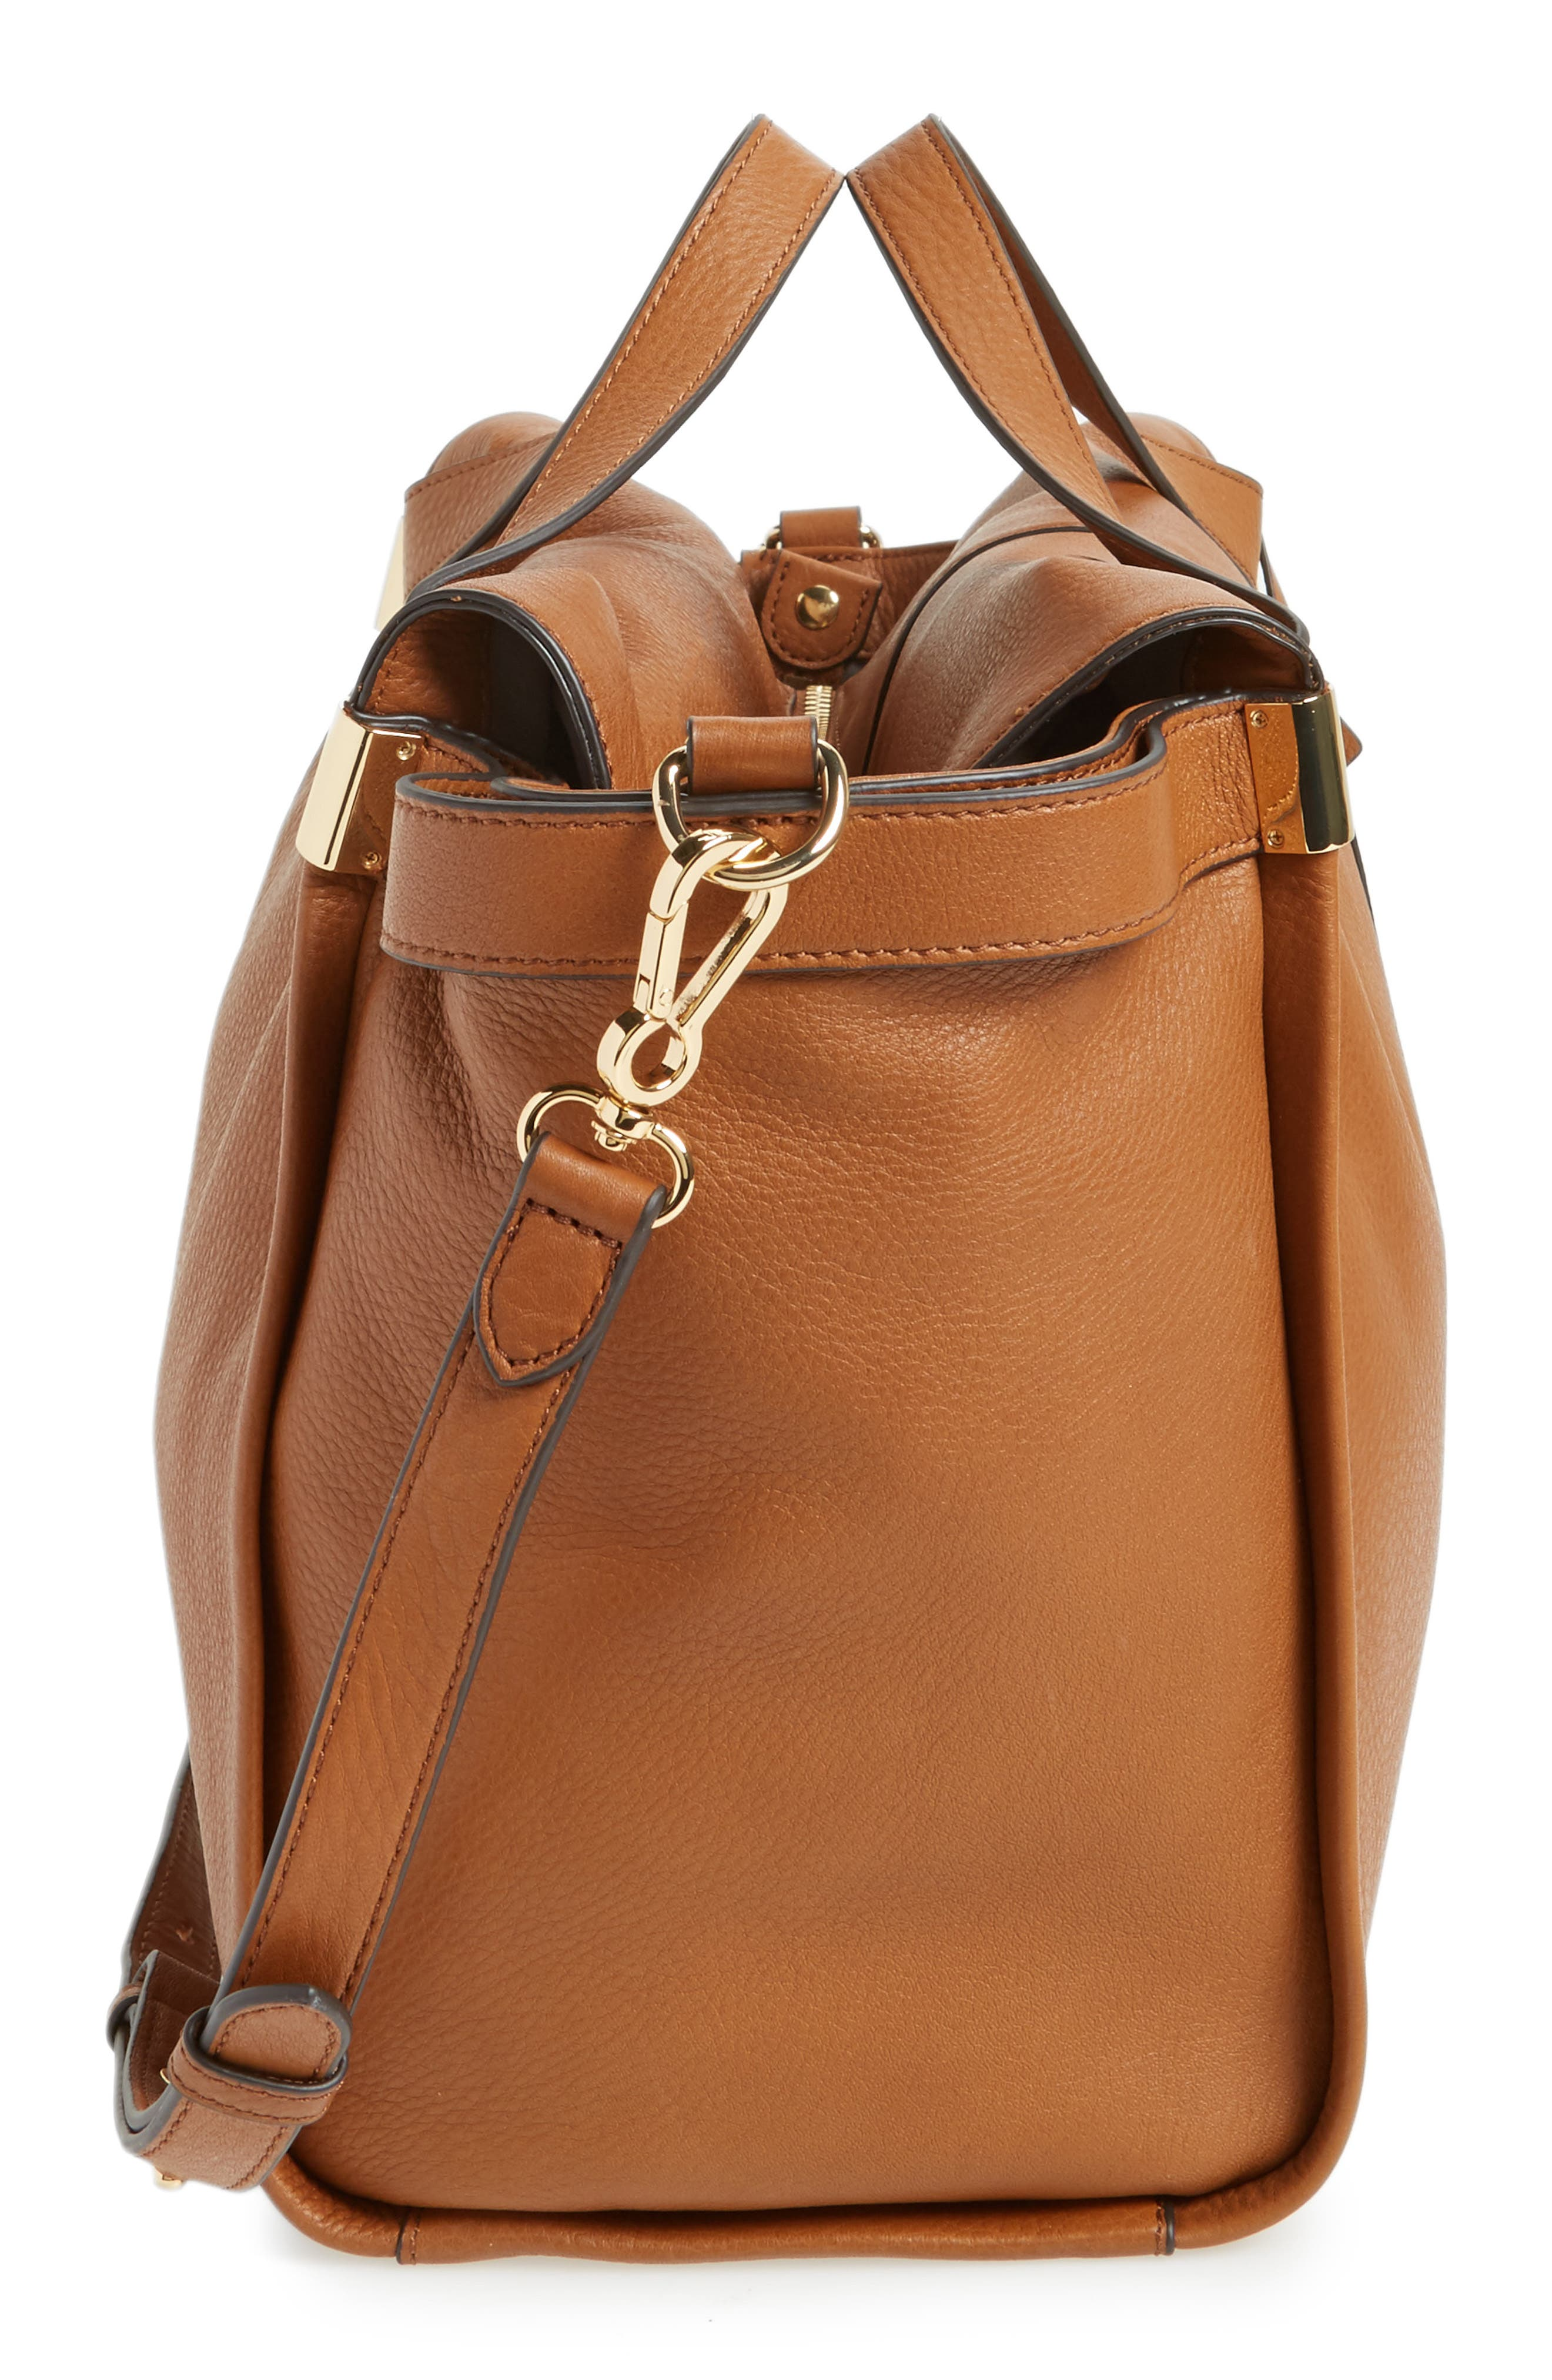 Rosen Leather Satchel,                             Alternate thumbnail 4, color,                             Dark Rum